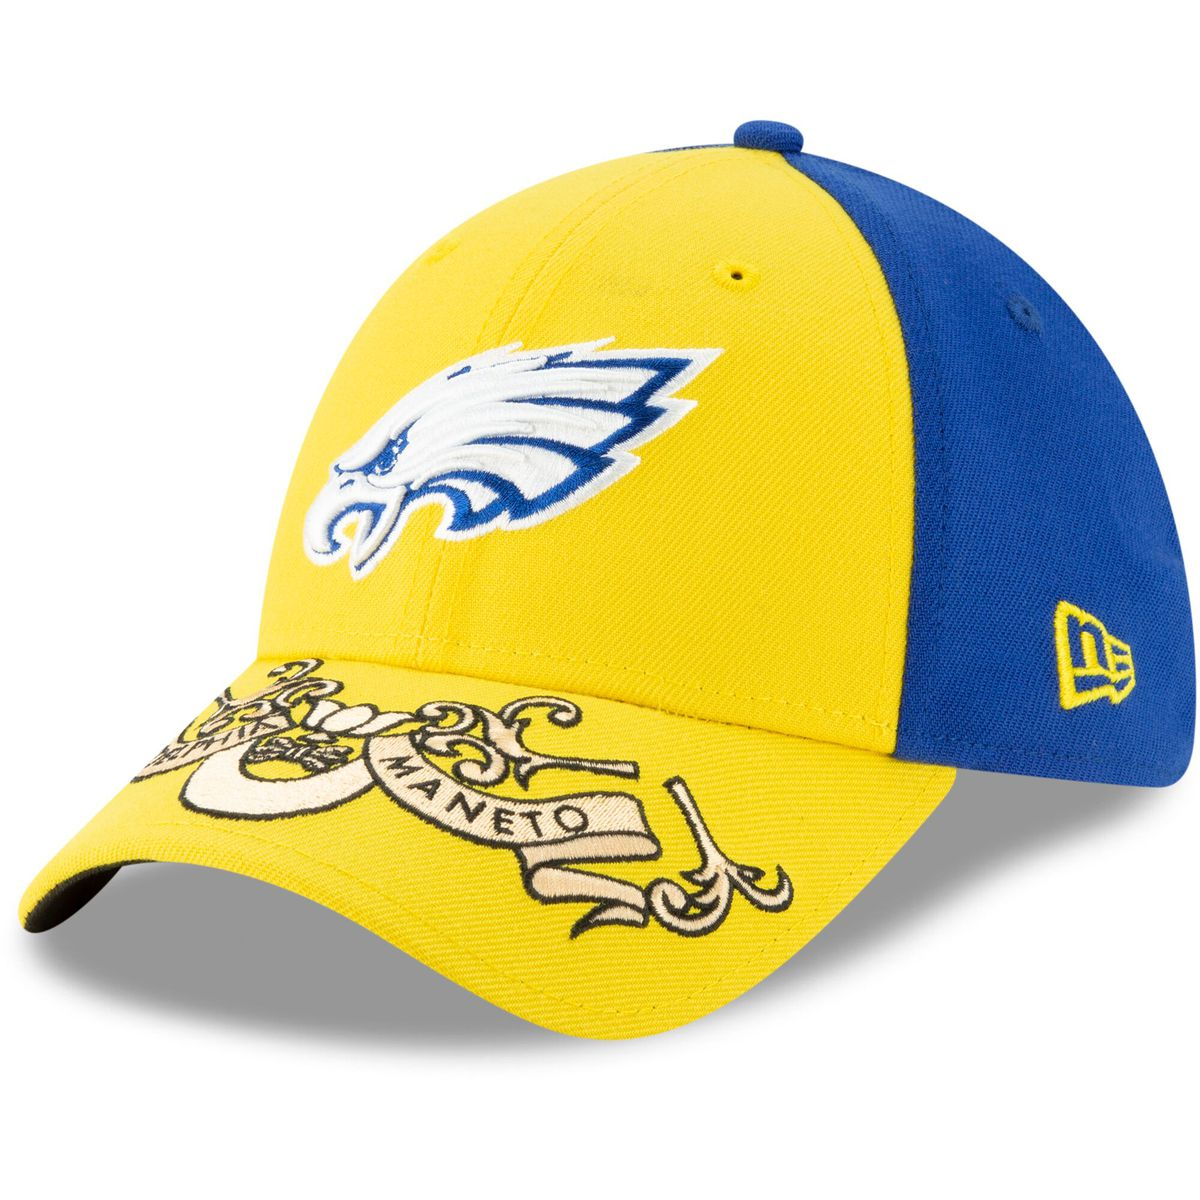 06702abf4bd2a New Era also has a hat available using the colors from this flag. Remember  the Eagles  blue and yellow throwback uniforms worn back in 2007